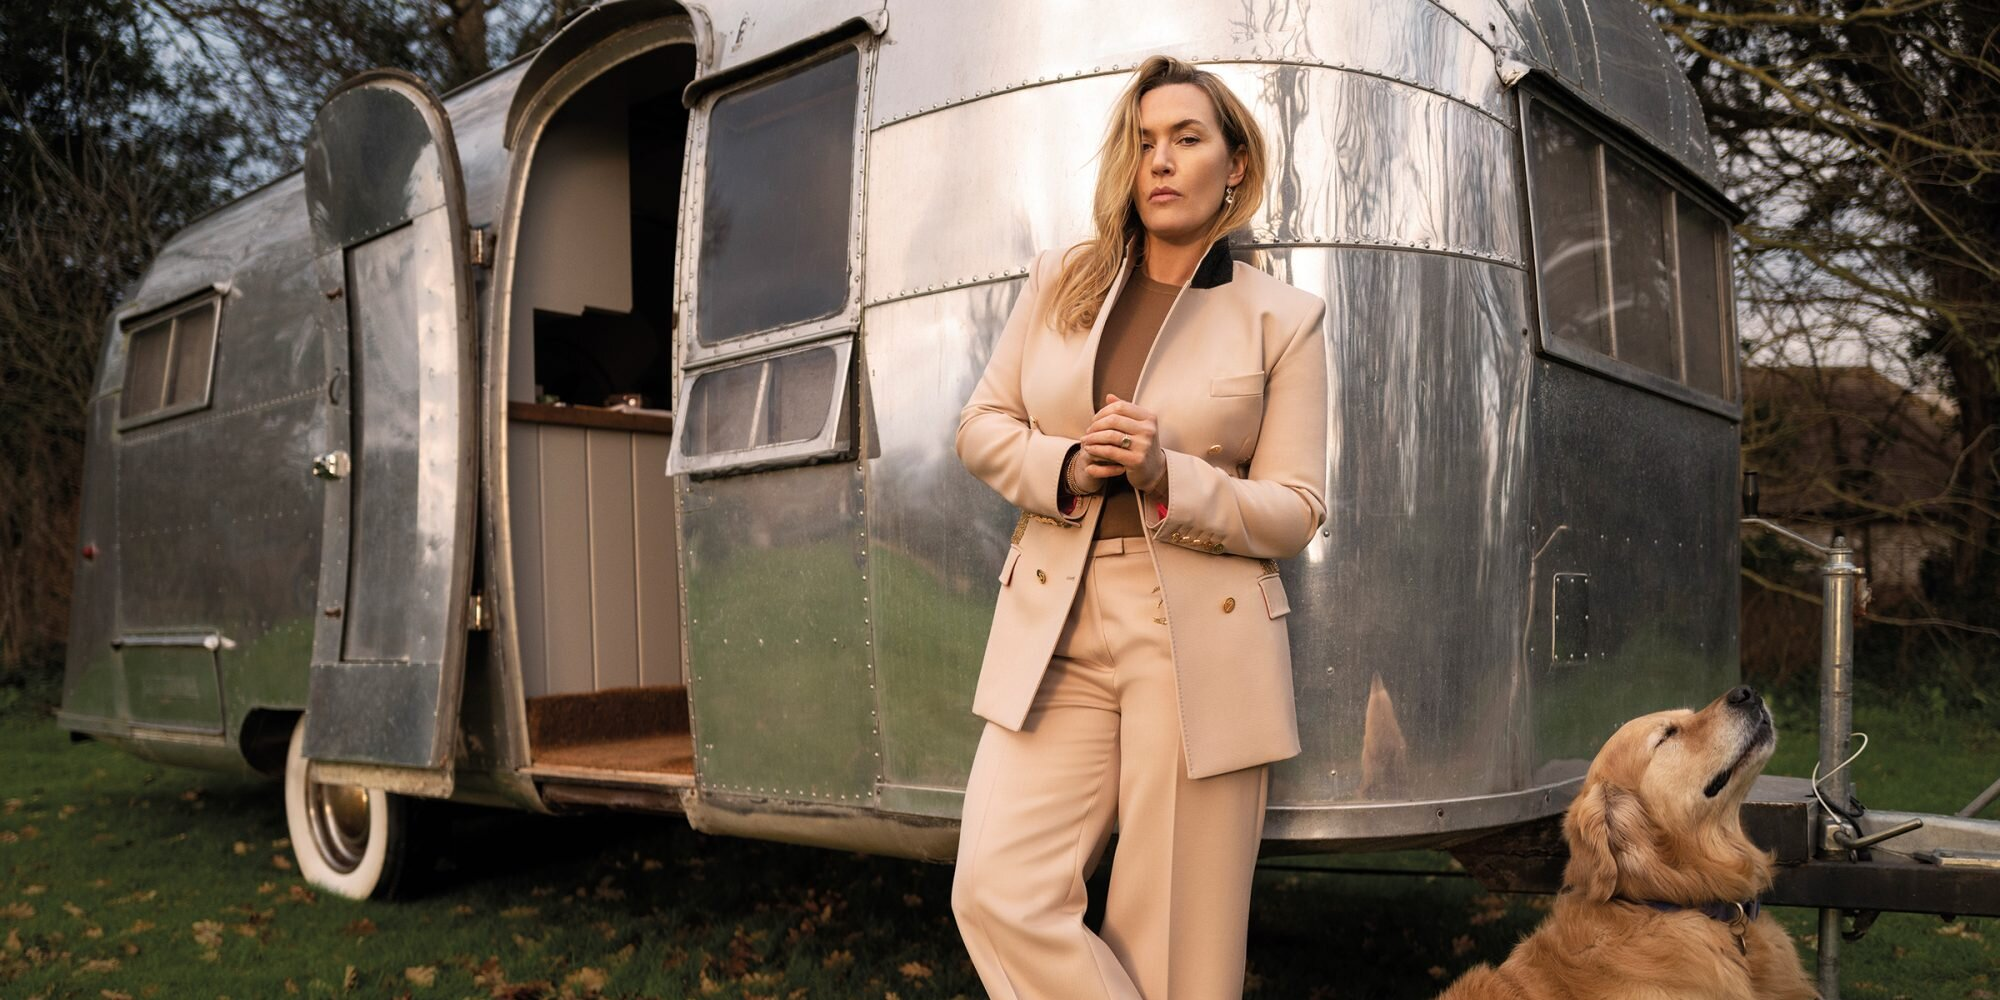 Kate Winslet Had to 'Stay Very Fit' to Take 'Grown Men Down to the Ground' in New HBO Series.jpg